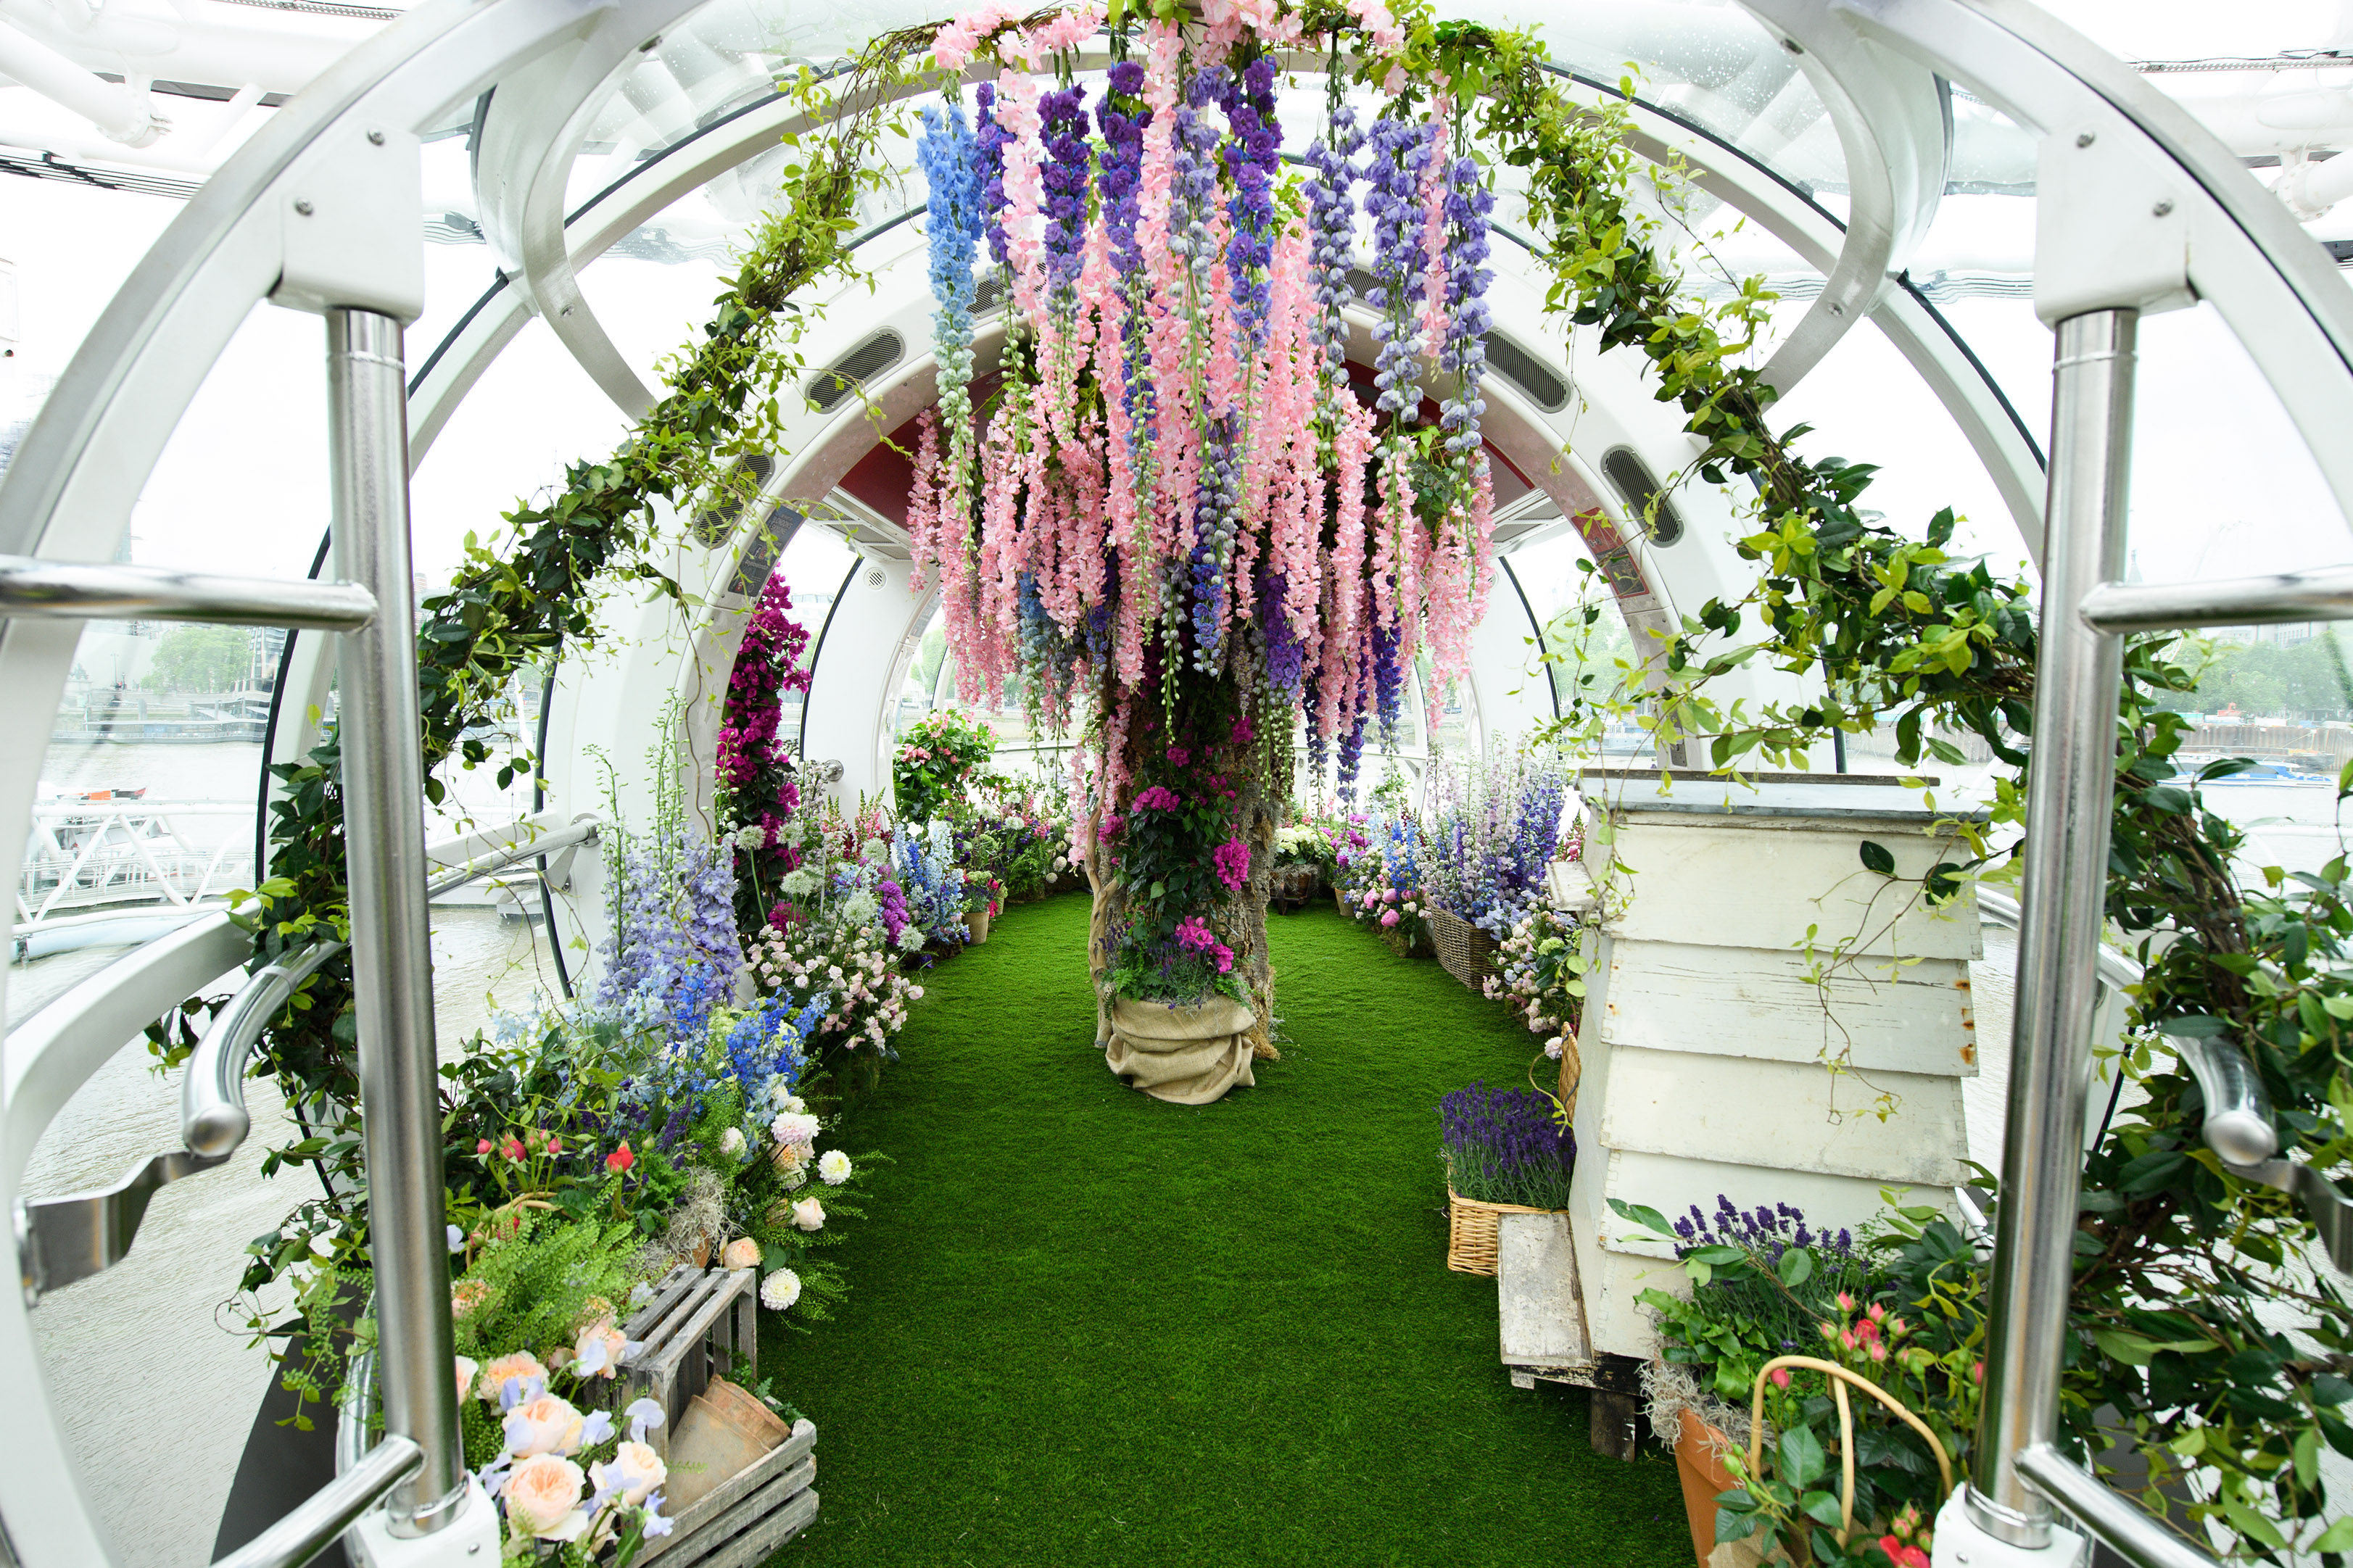 Chelsea Flower Show in the London Eye - Bespoke Events London